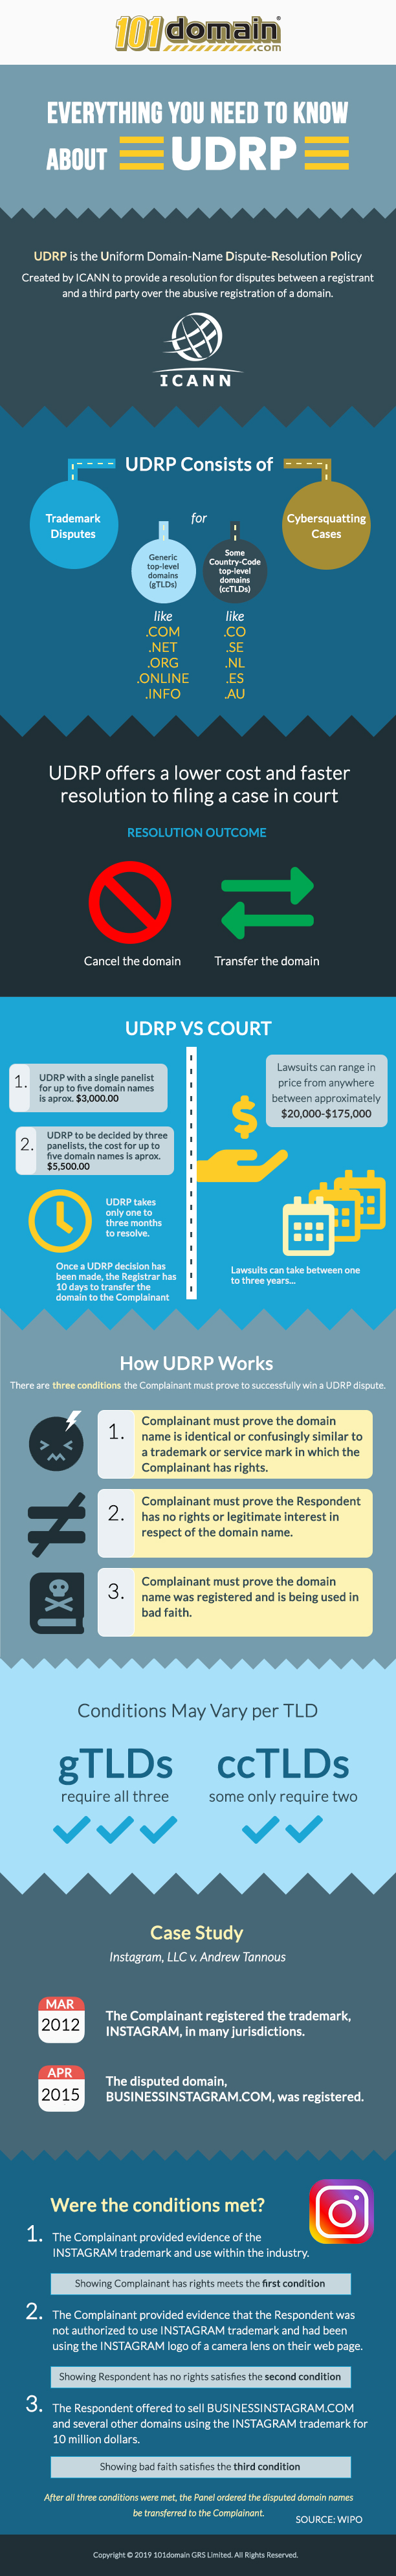 UDRP Infographic